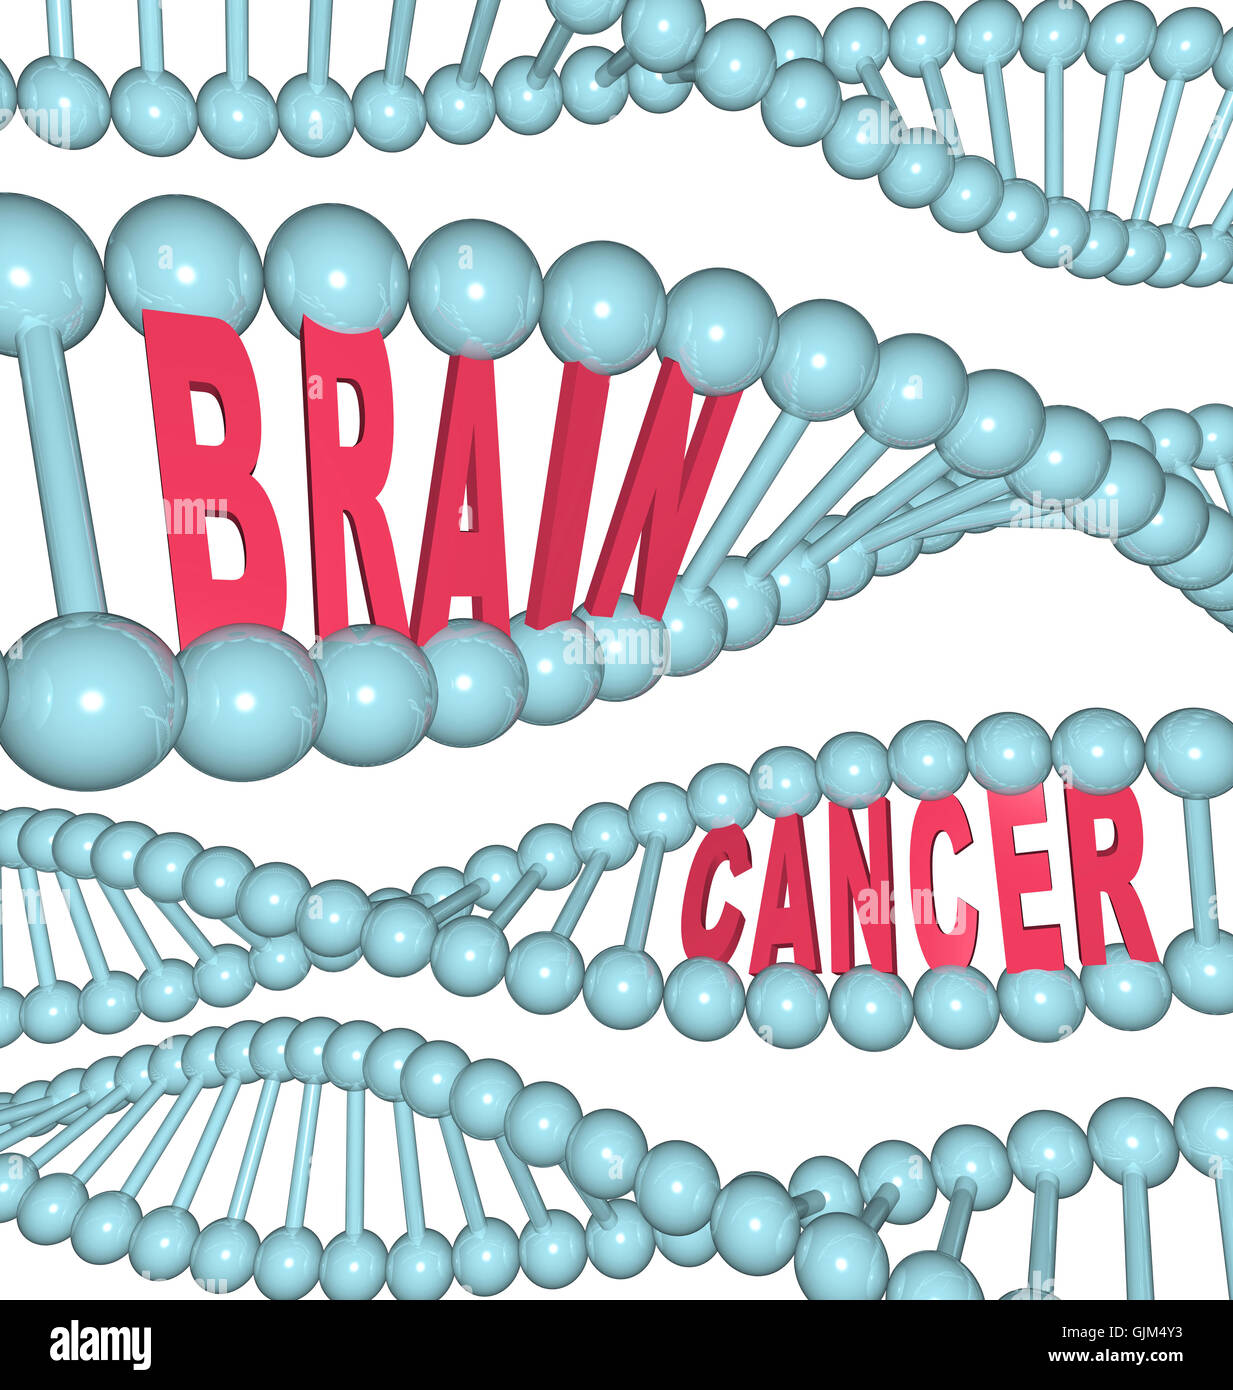 Brain Cancer Words in DNA Strand - Stock Image